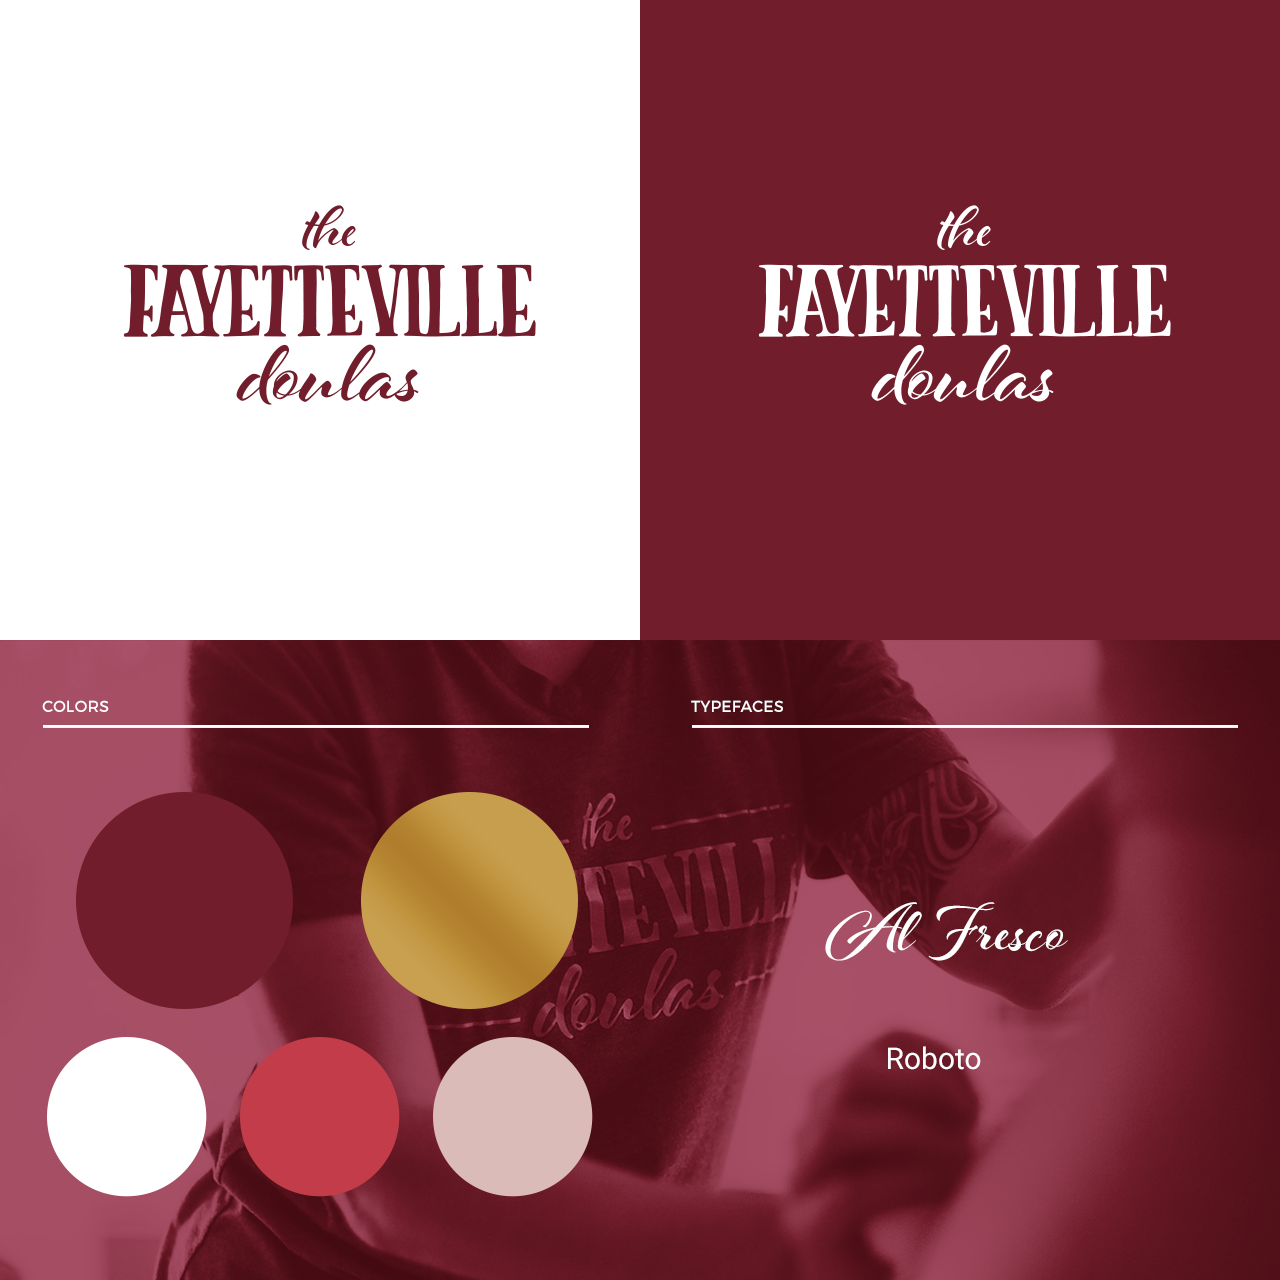 The Fayetteville Doulas branding layout